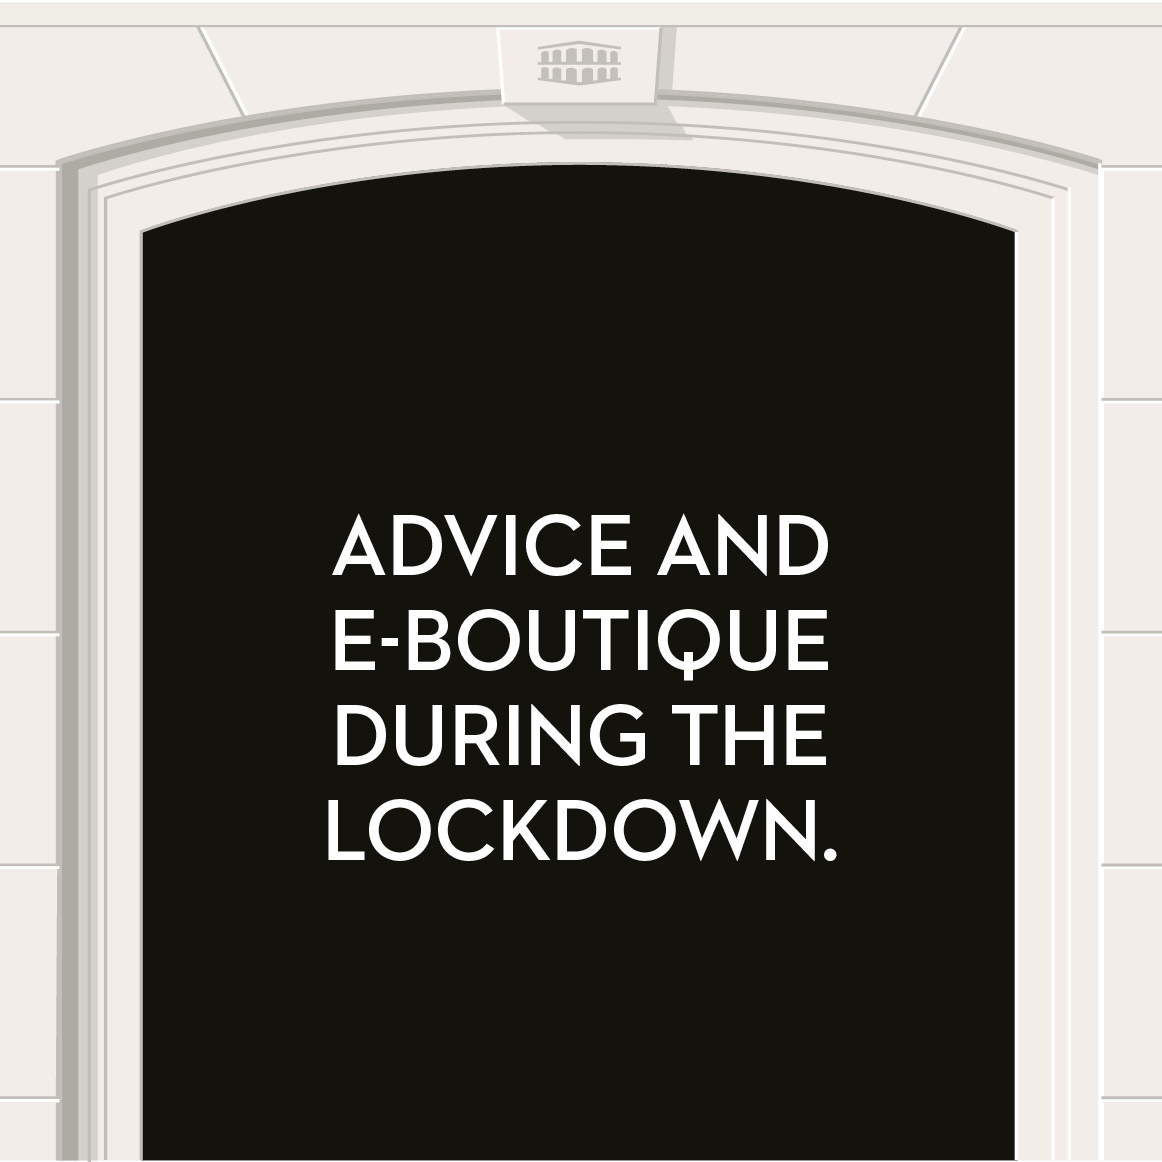 Coronavirus - advice and e-boutique during the lockdown.